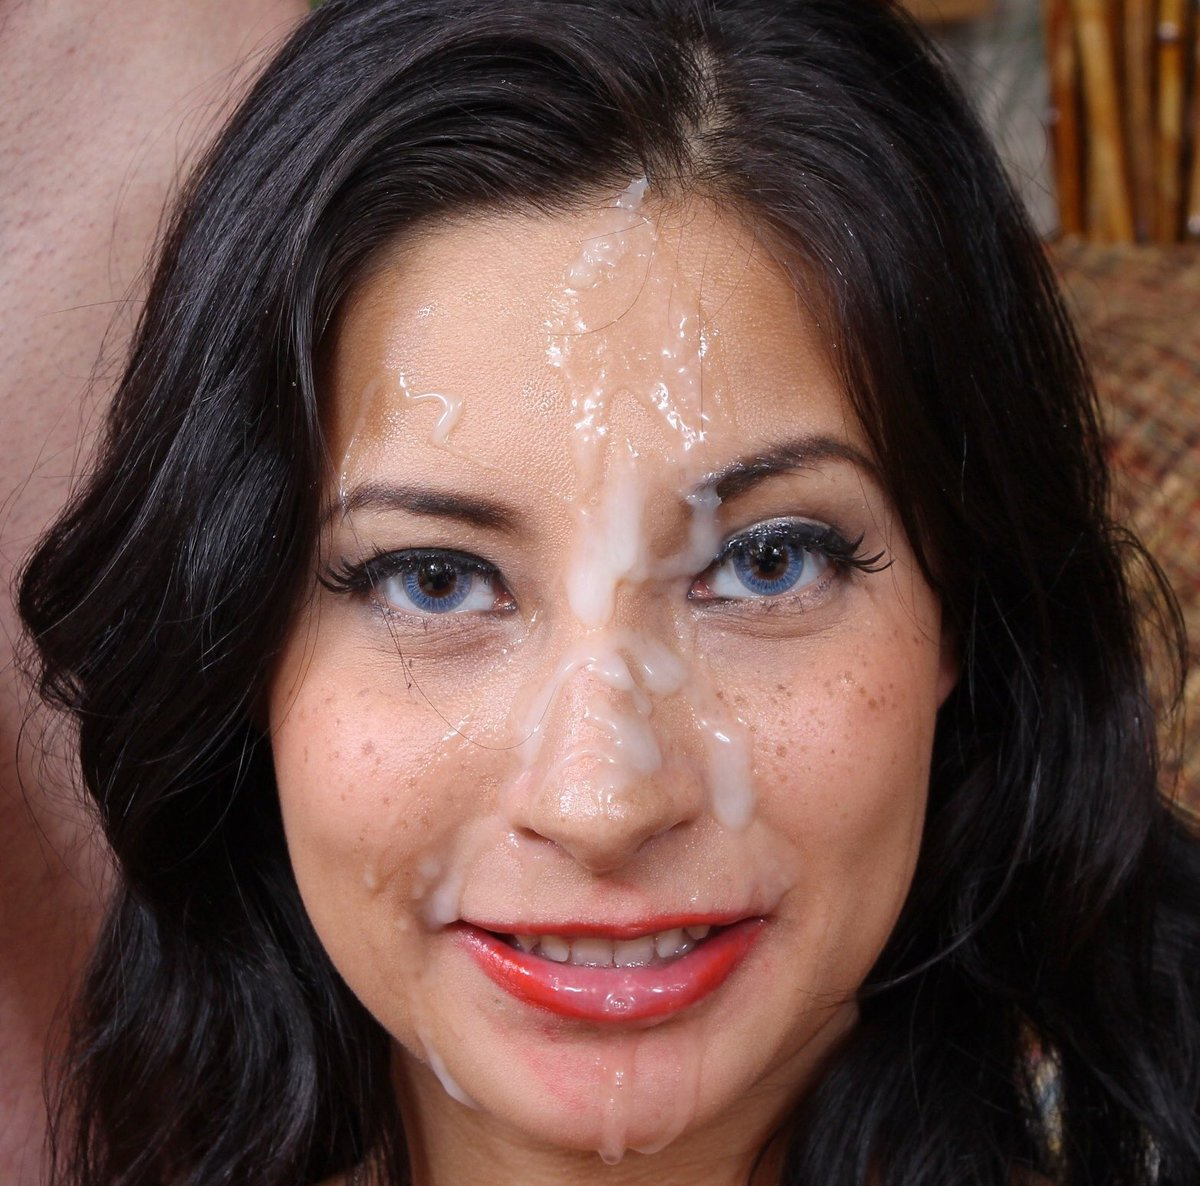 facial-cumshot-movie-galleries-ejaculation-blood